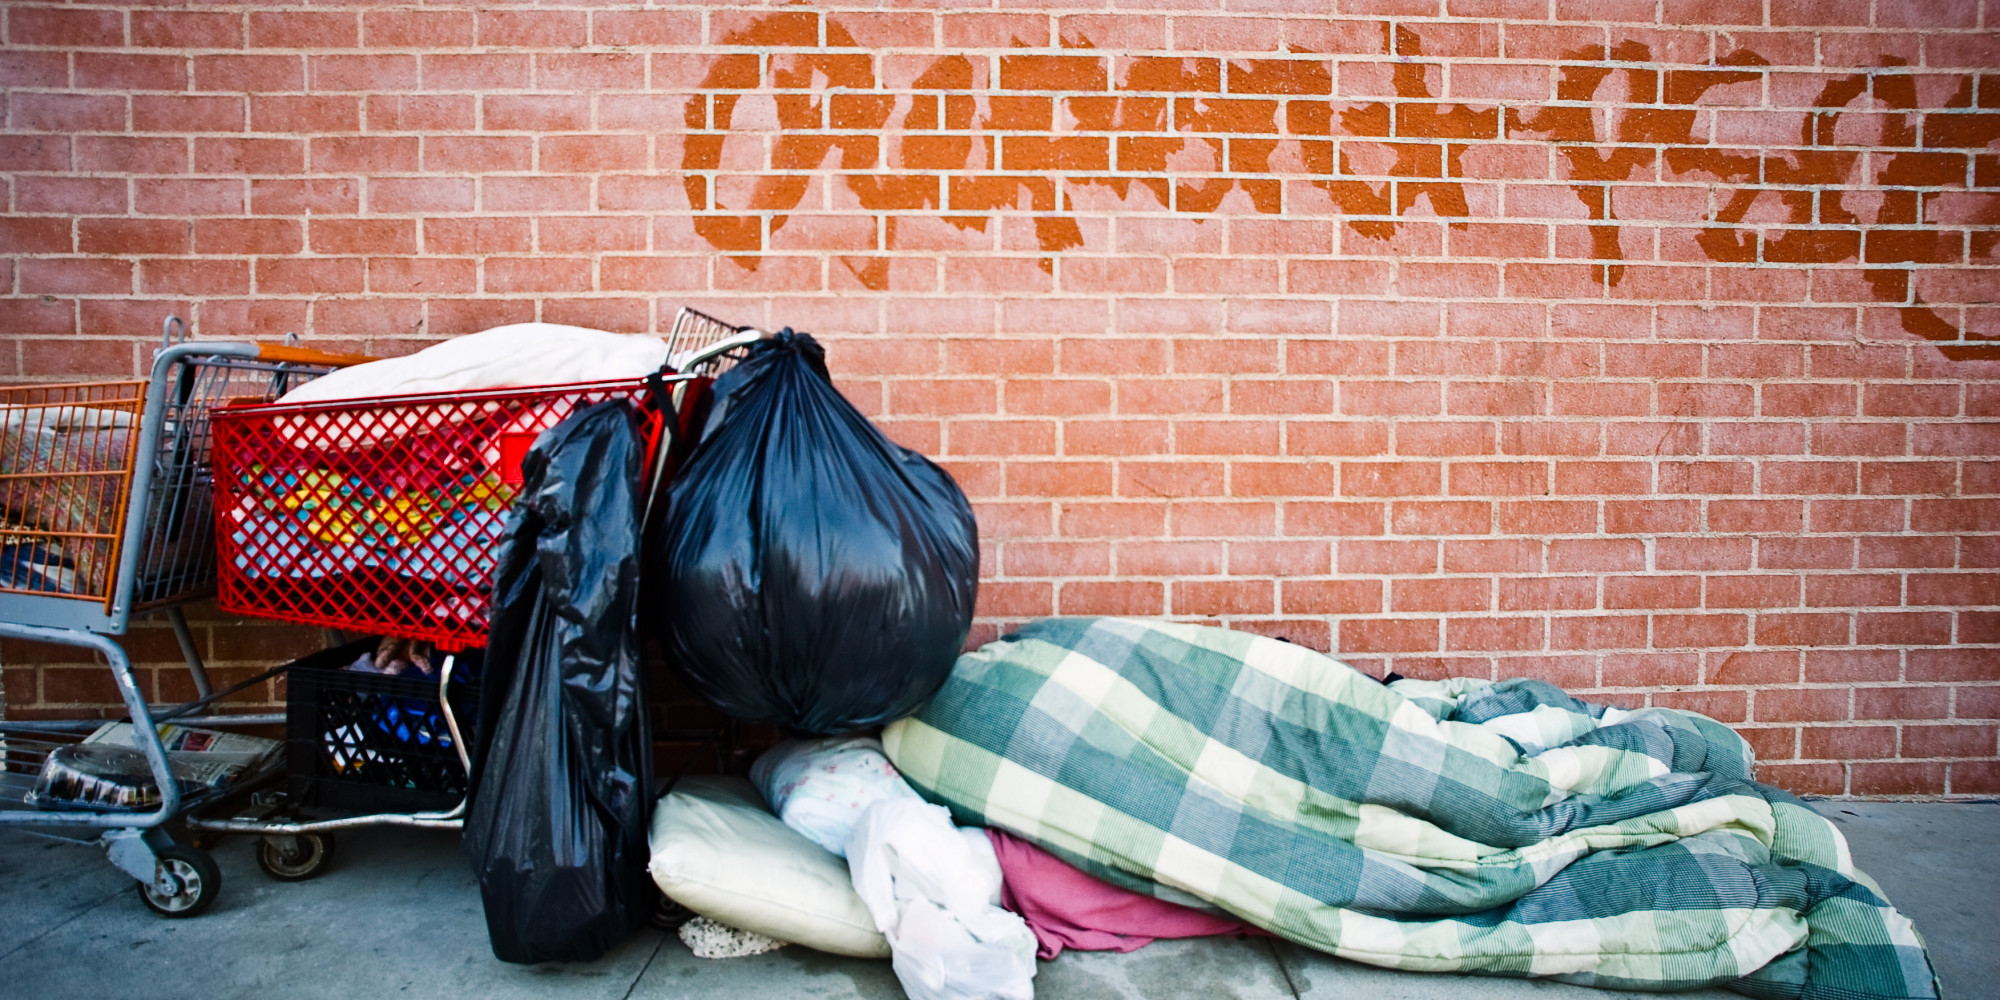 homelessness and people homeless children